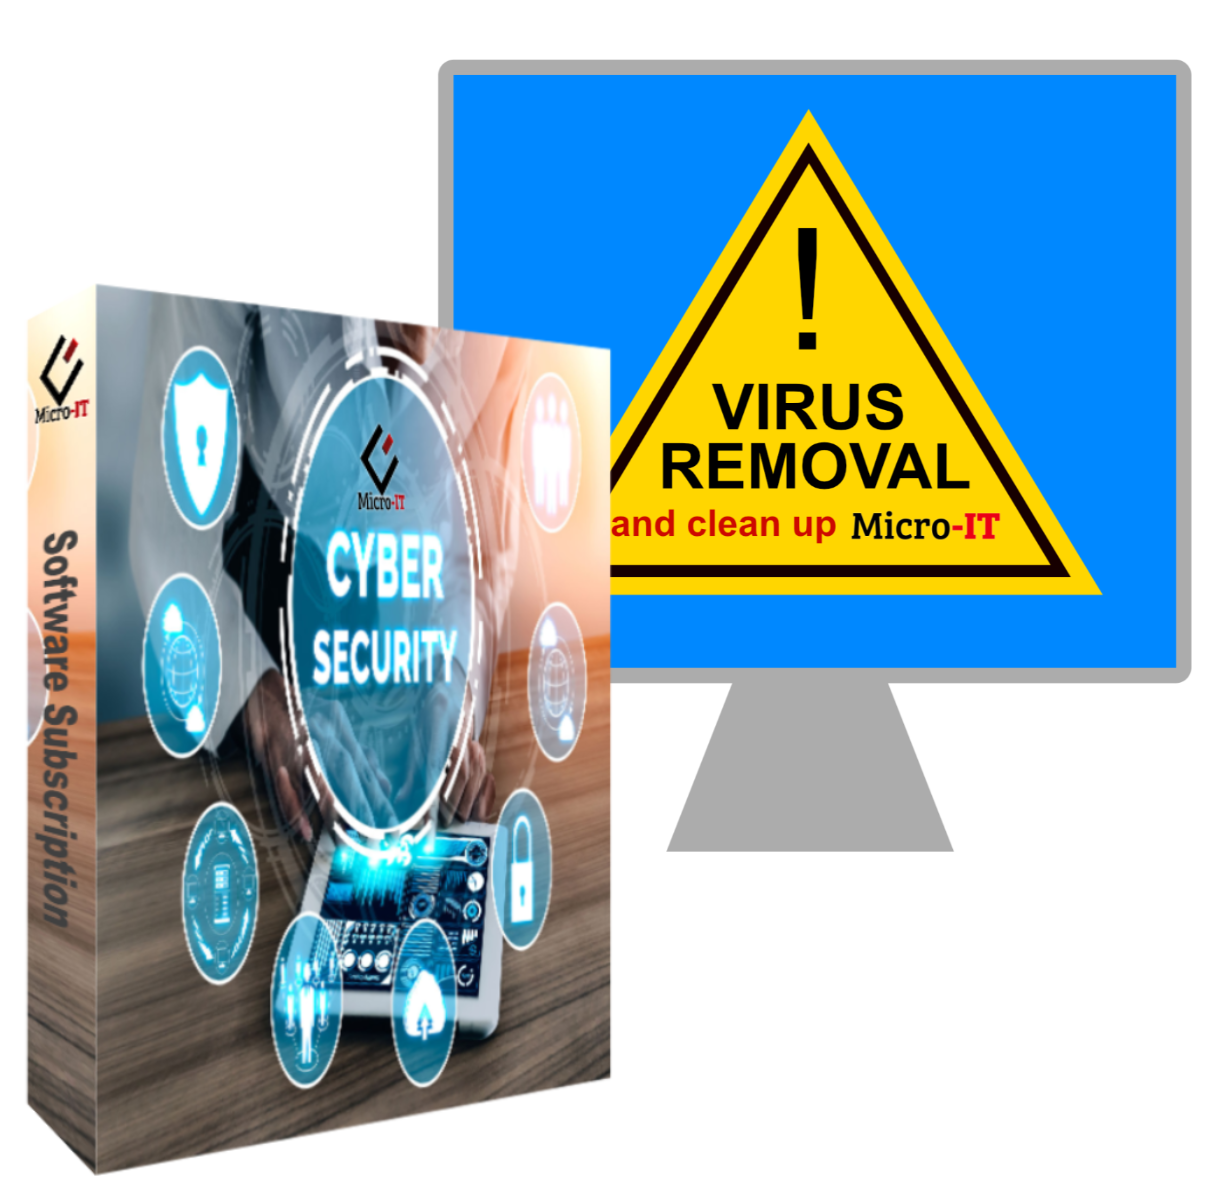 Cyber Security Bundle & Virus/Computer Cleaning